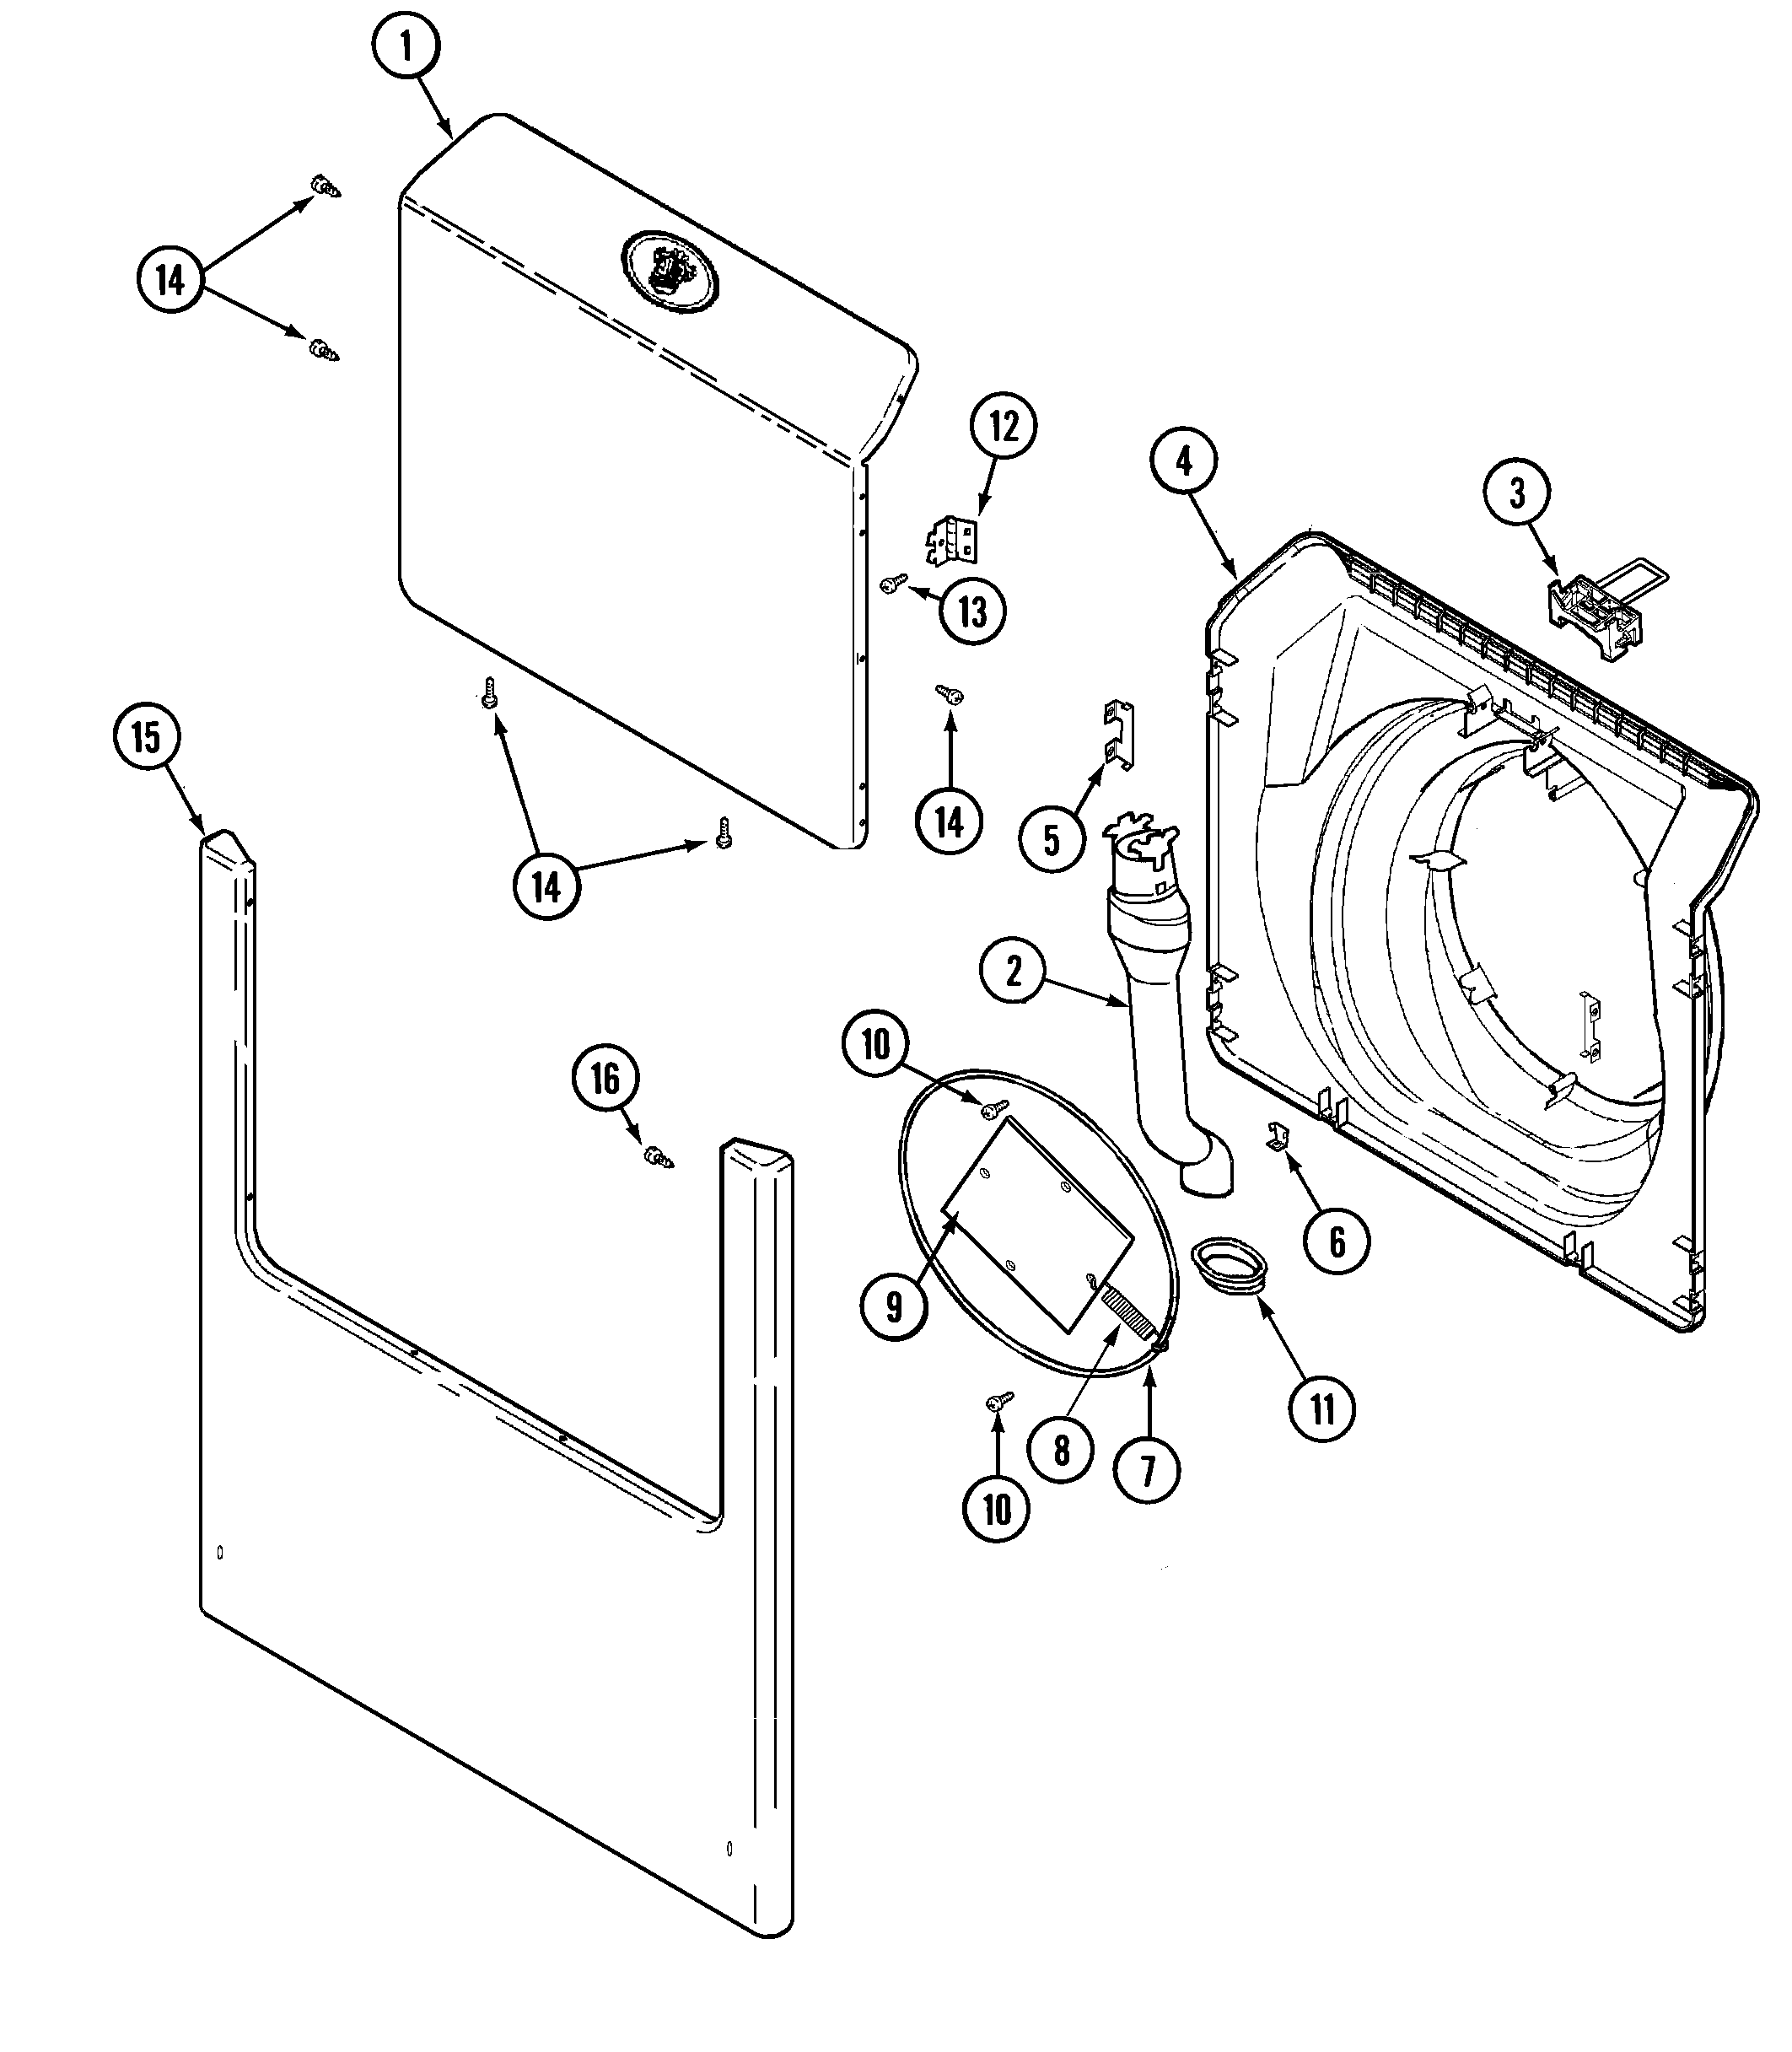 small resolution of wiring for maytag dryer moreover my maytag performa med5740tq0 dryer neptune washer diagram furthermore maytag dryer parts diagram